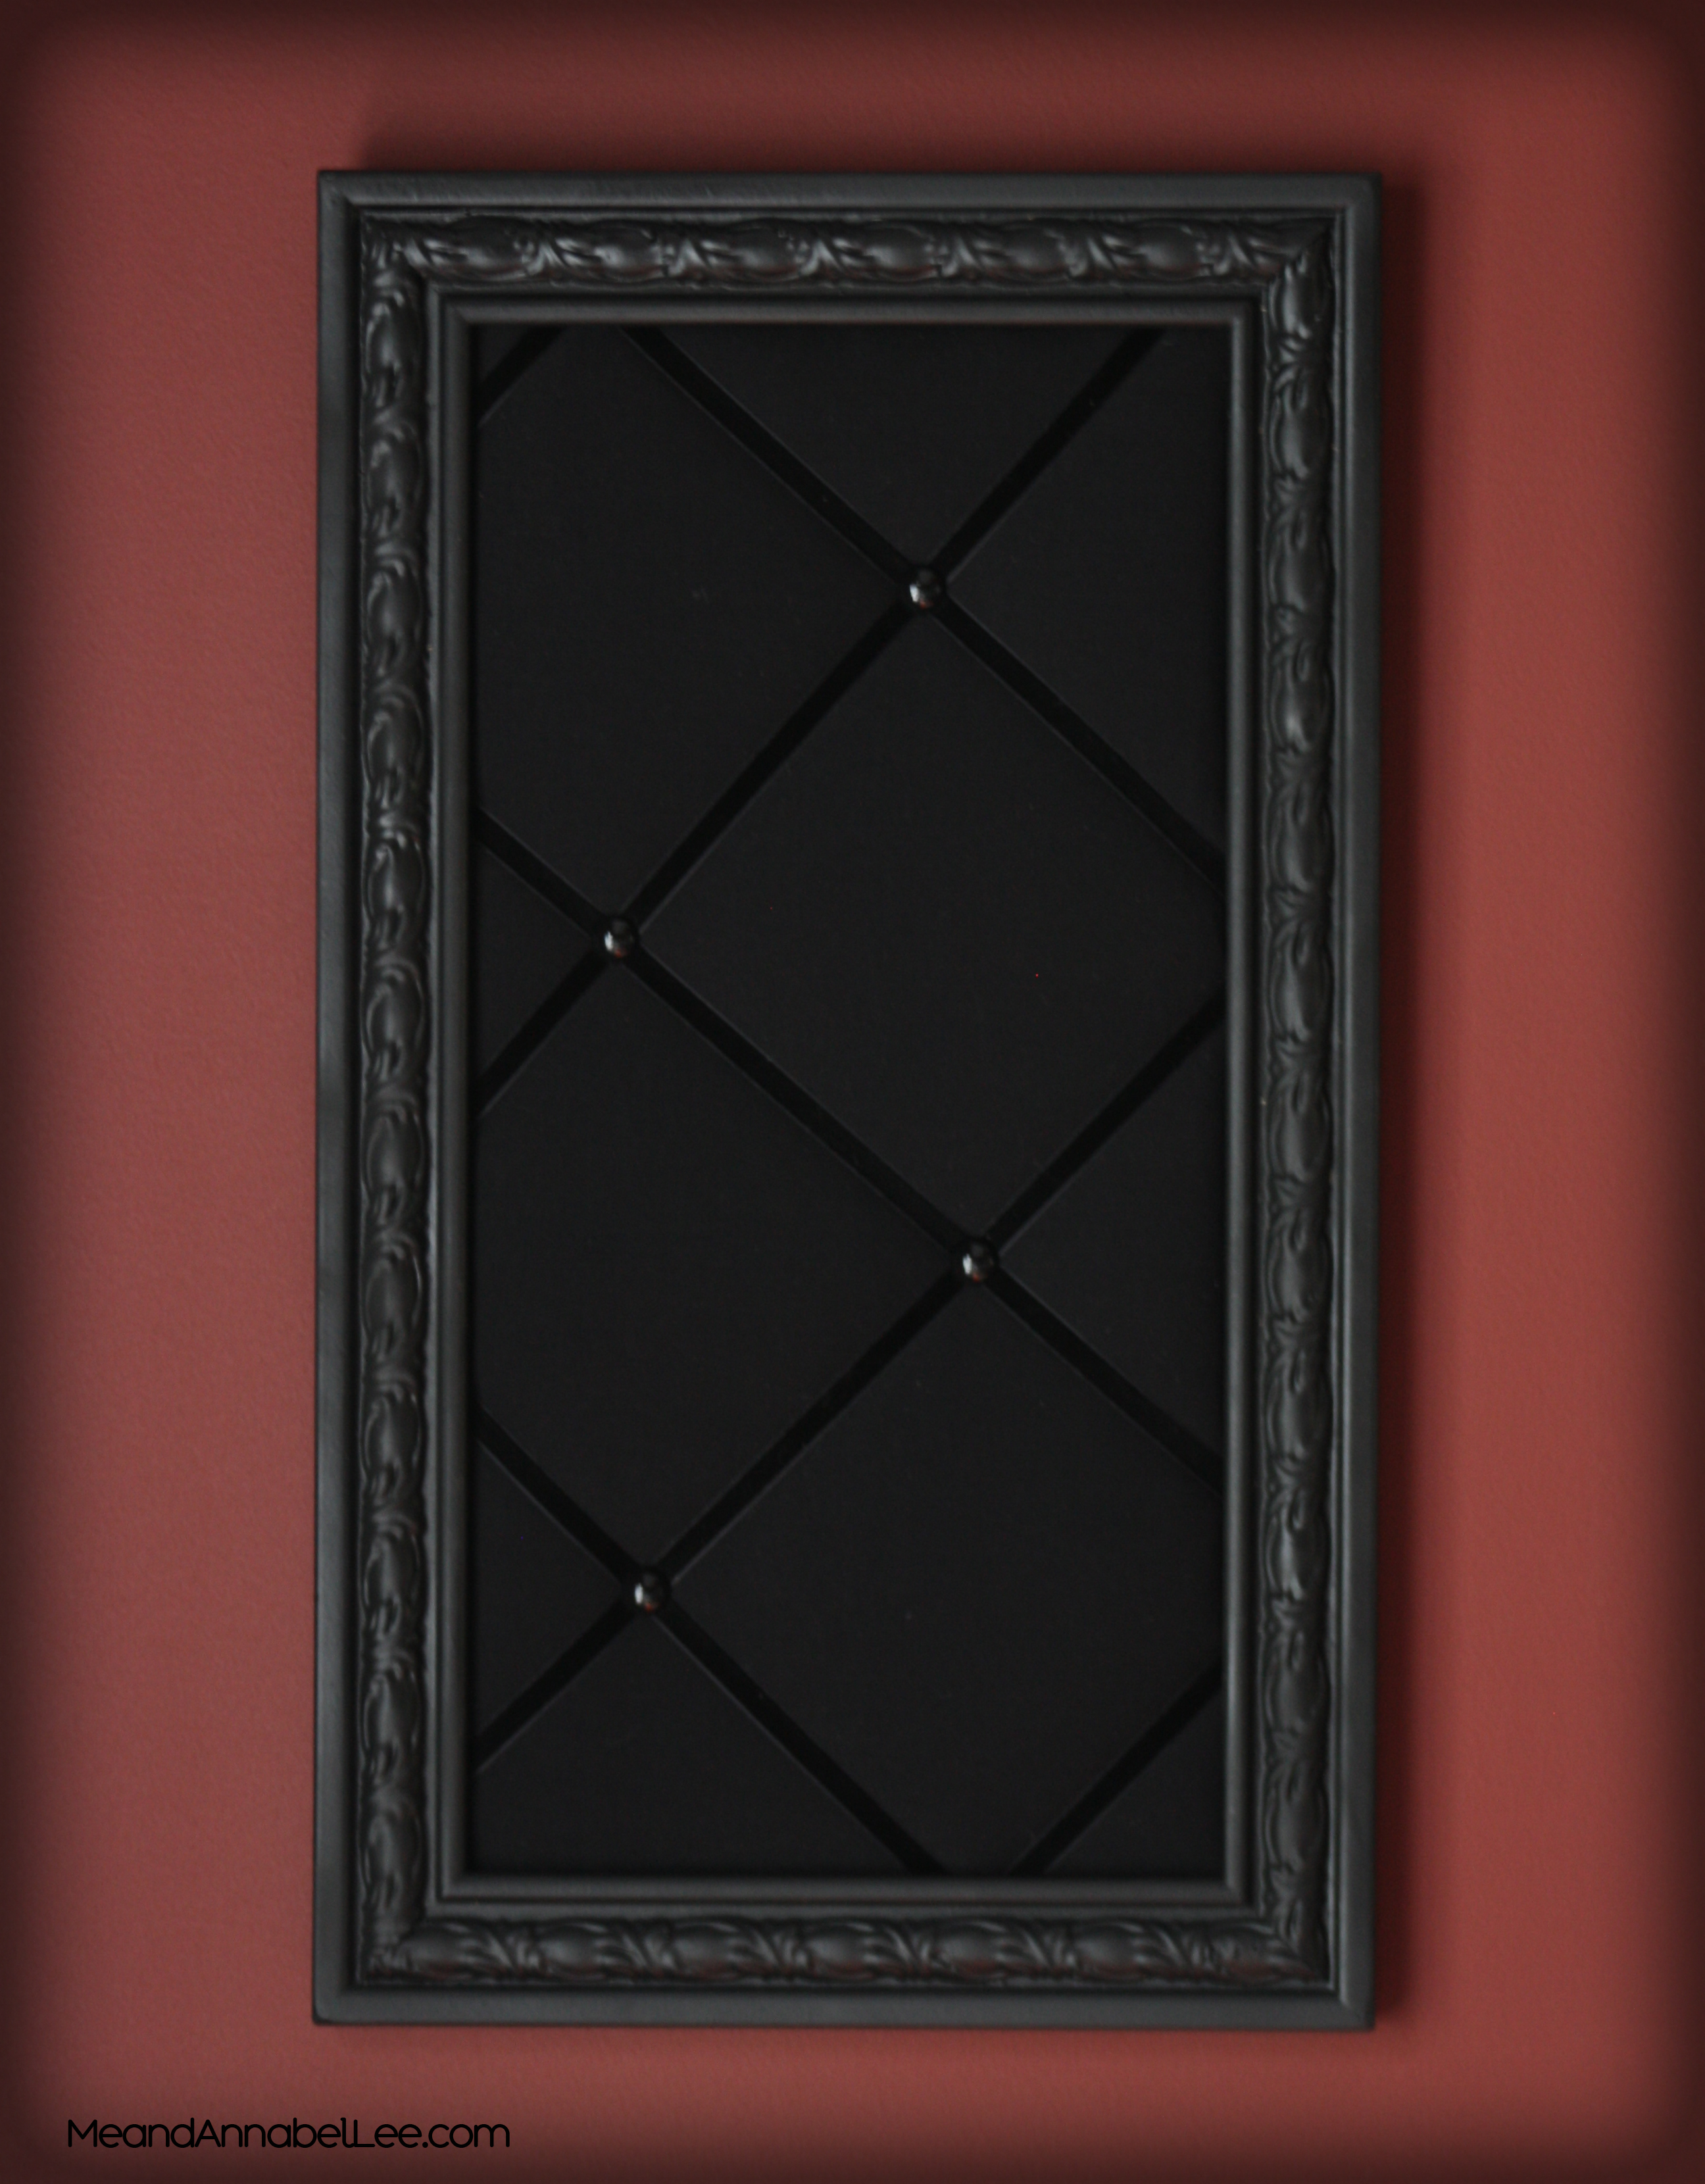 Diy Upholstered Gothic Memo Board Black Victorian Pin Board Goth Home Decor Me And Annabel Lee Gothic Blog